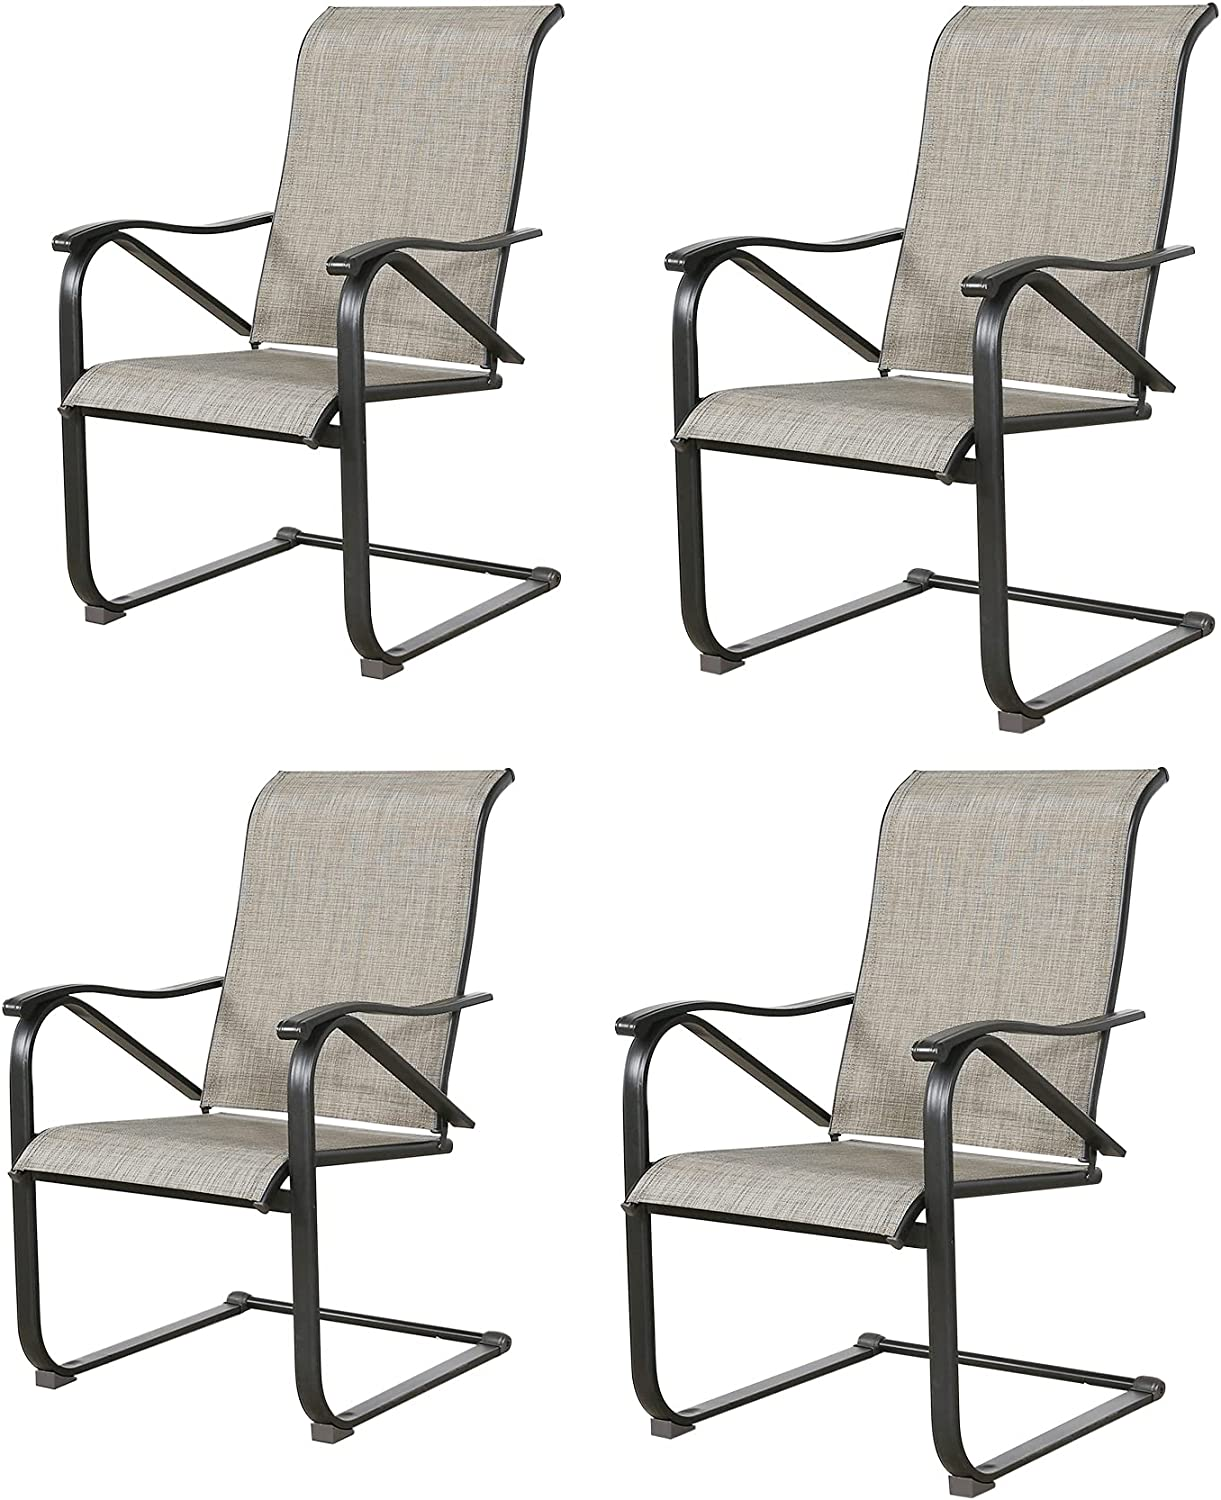 Patio Latest item Tree Outdoor Dining Chairs Motion Dinin Spring unisex Sling